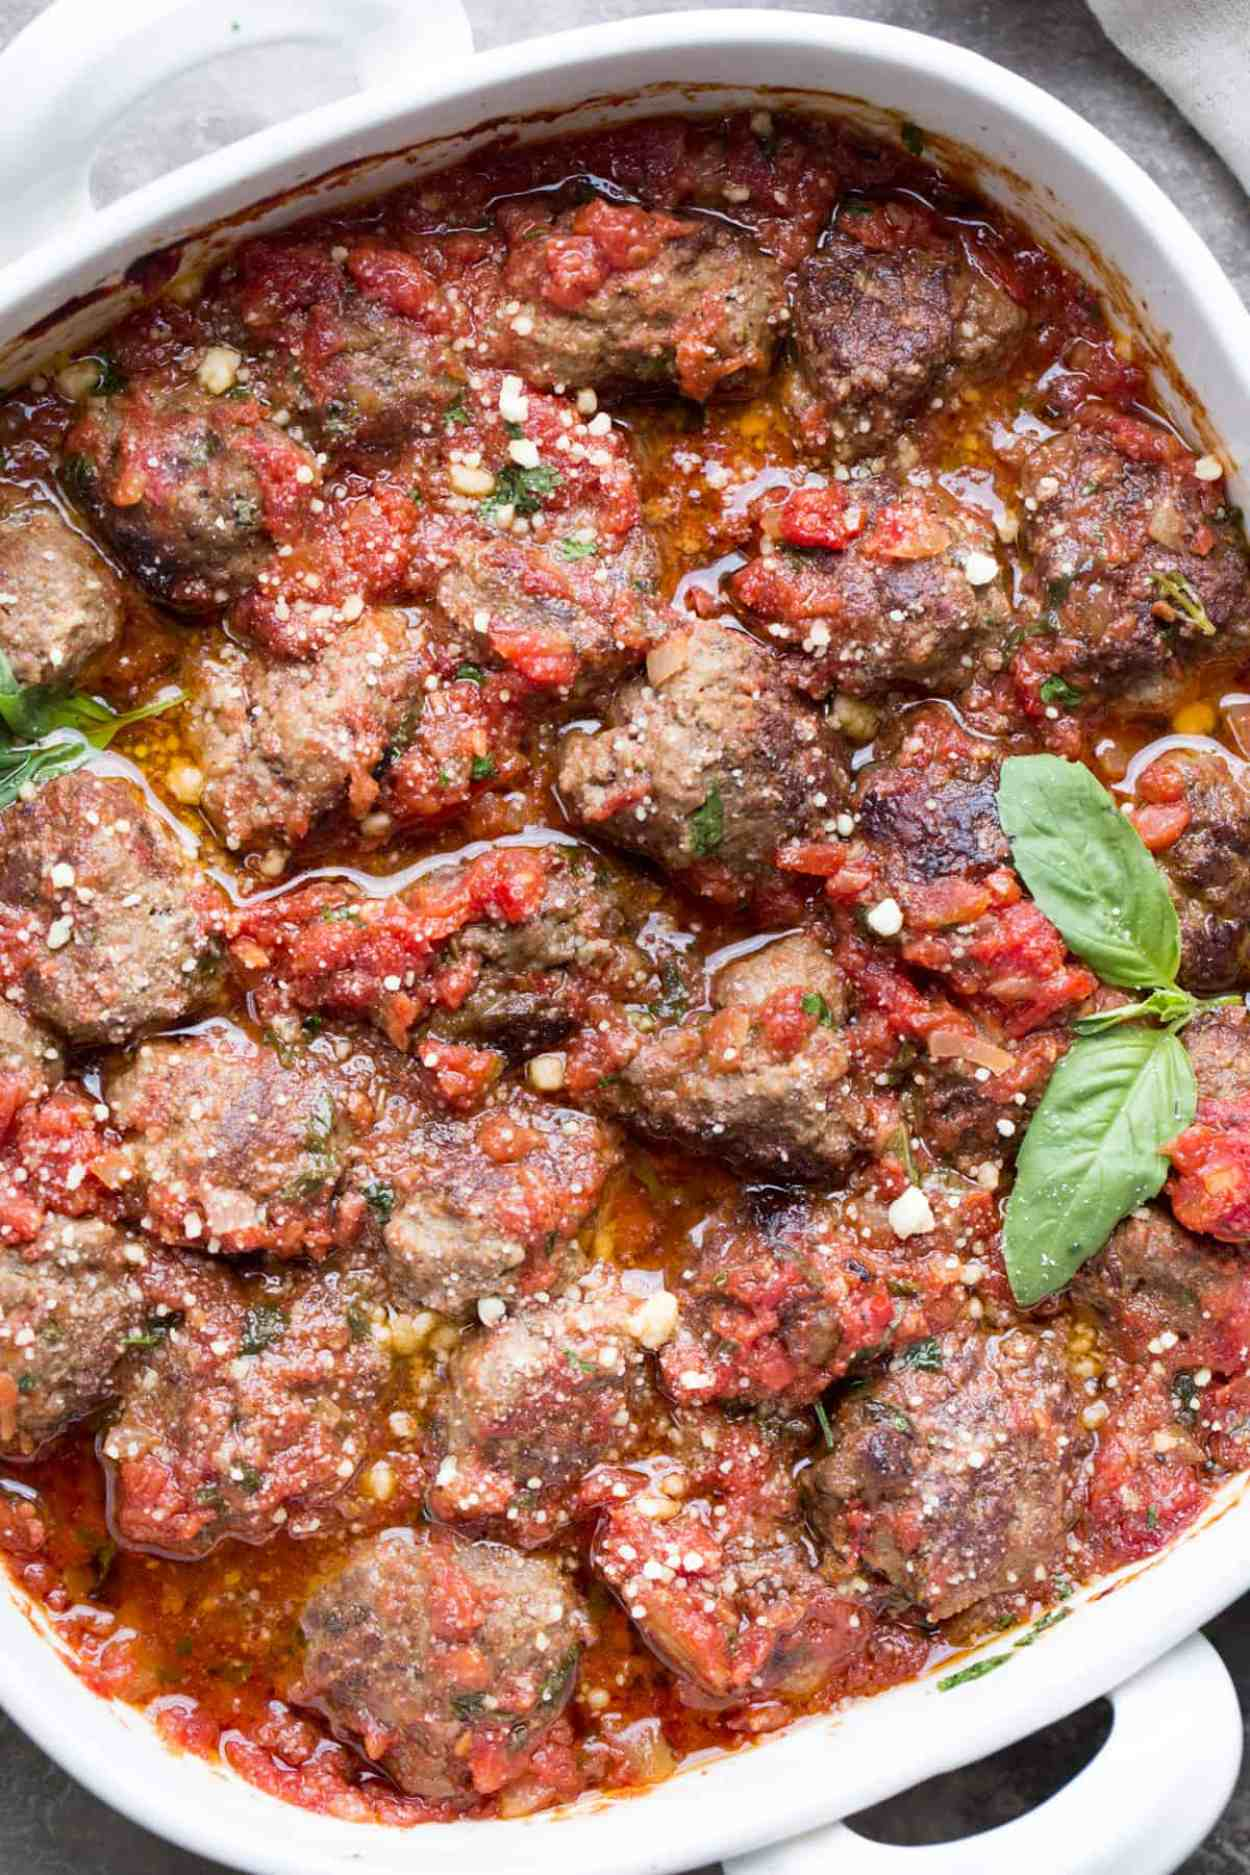 Easy meatball recipe in a casserole dish topped with Parmesan cheese, and fresh basil.